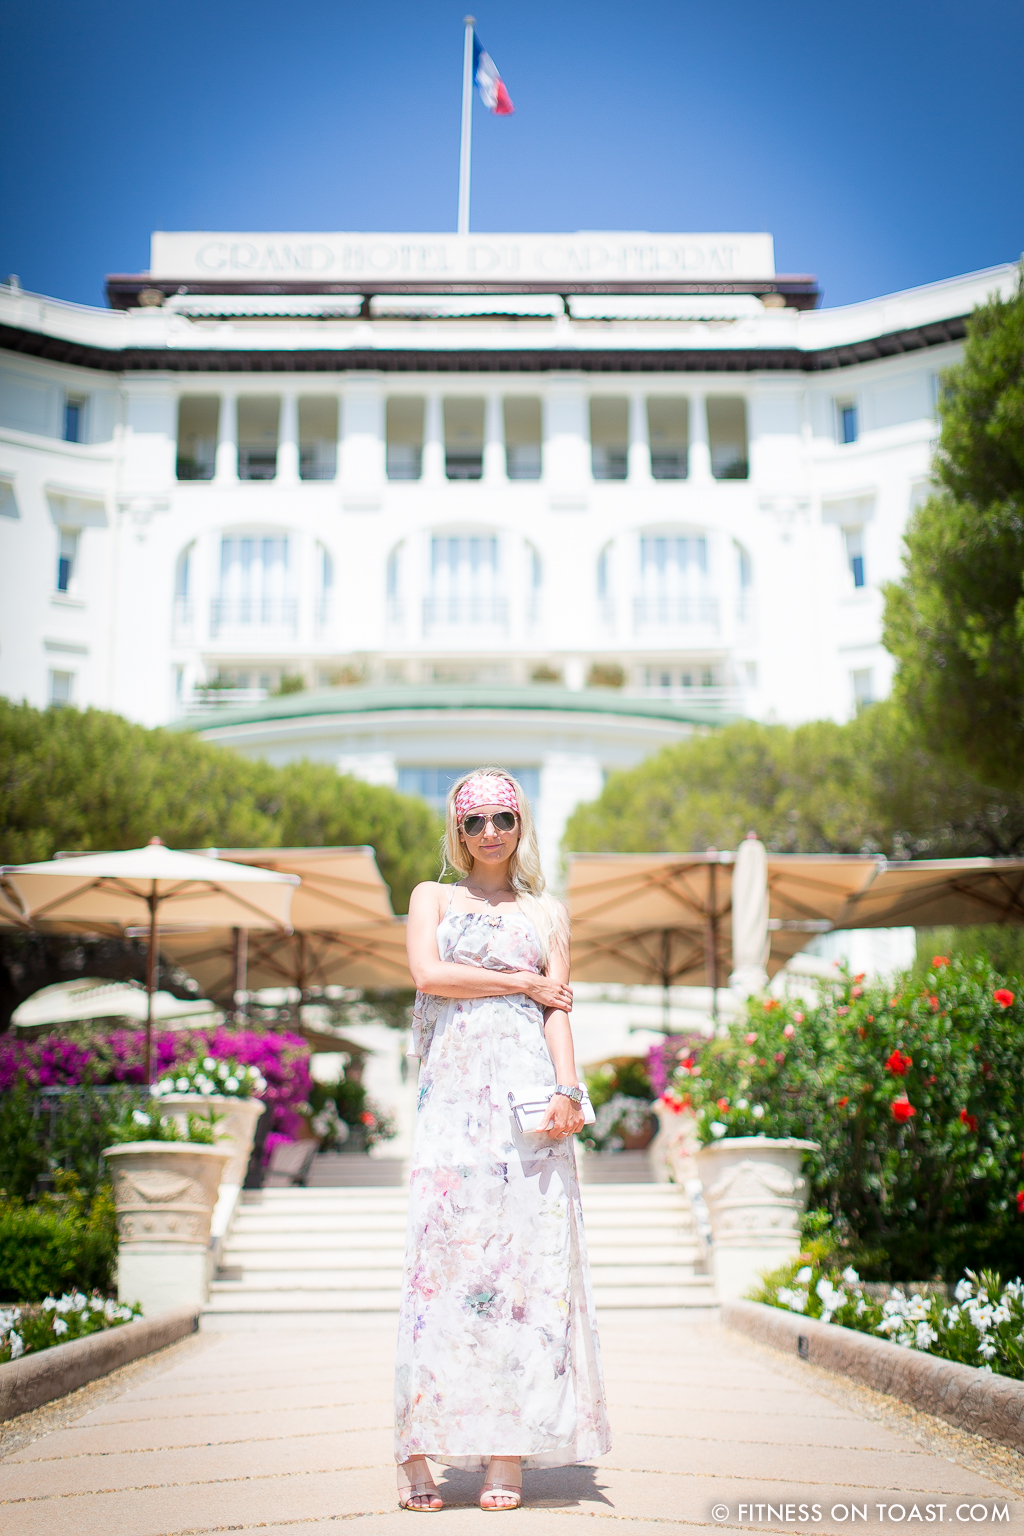 Fitness On Toast Faya Blog Benefits Of Walking Healthy Walk Grand Hotel Du Cap Ferrat Cote D'Azur Azur South Of France Exercise Calorie Burn Girl Fashion-2